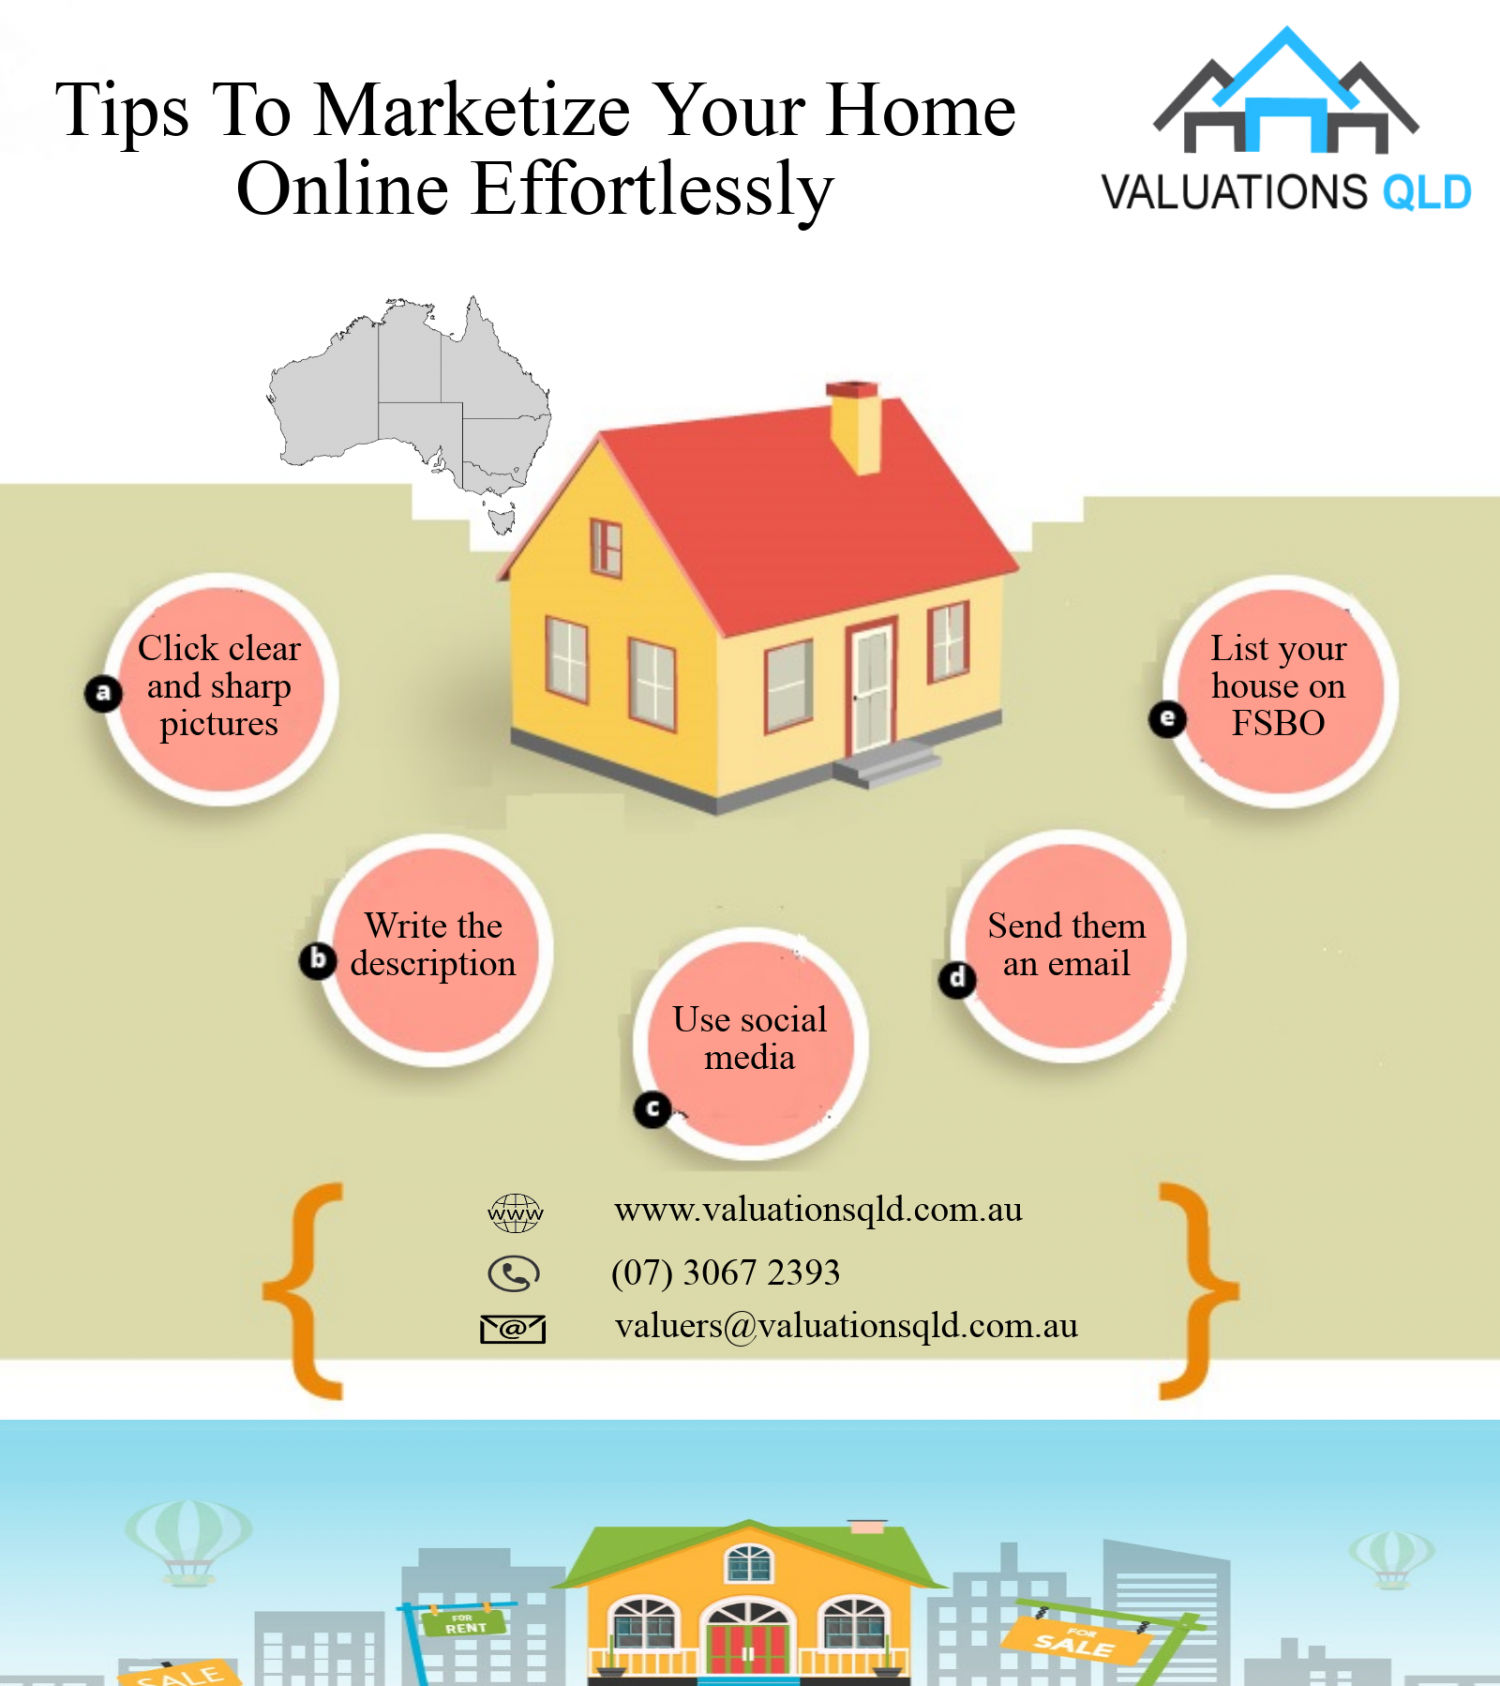 Valuations QLD - Brisbane Property Valuation Infographic